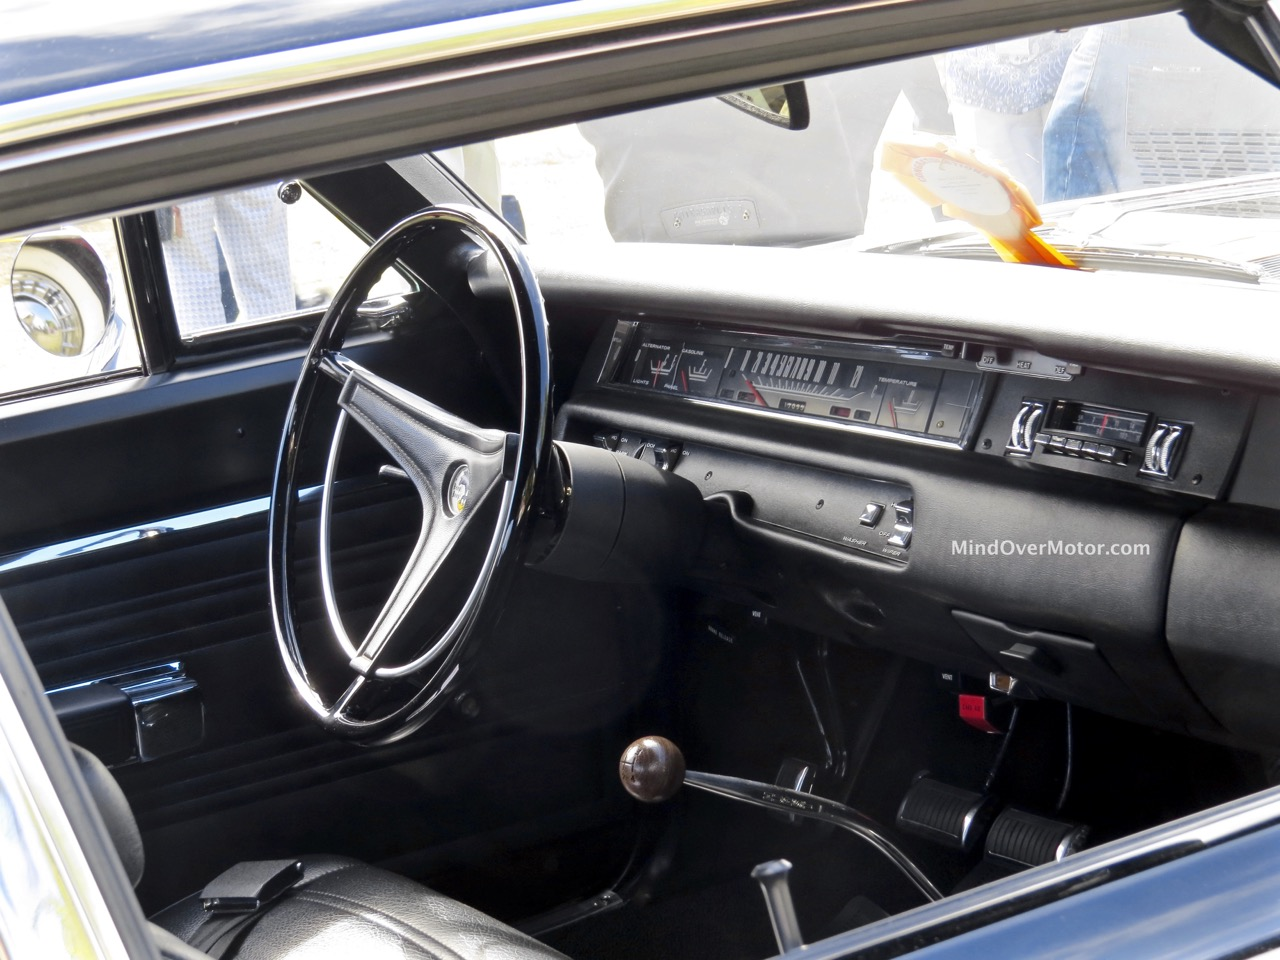 1969 Plymouth Road Runner Interior